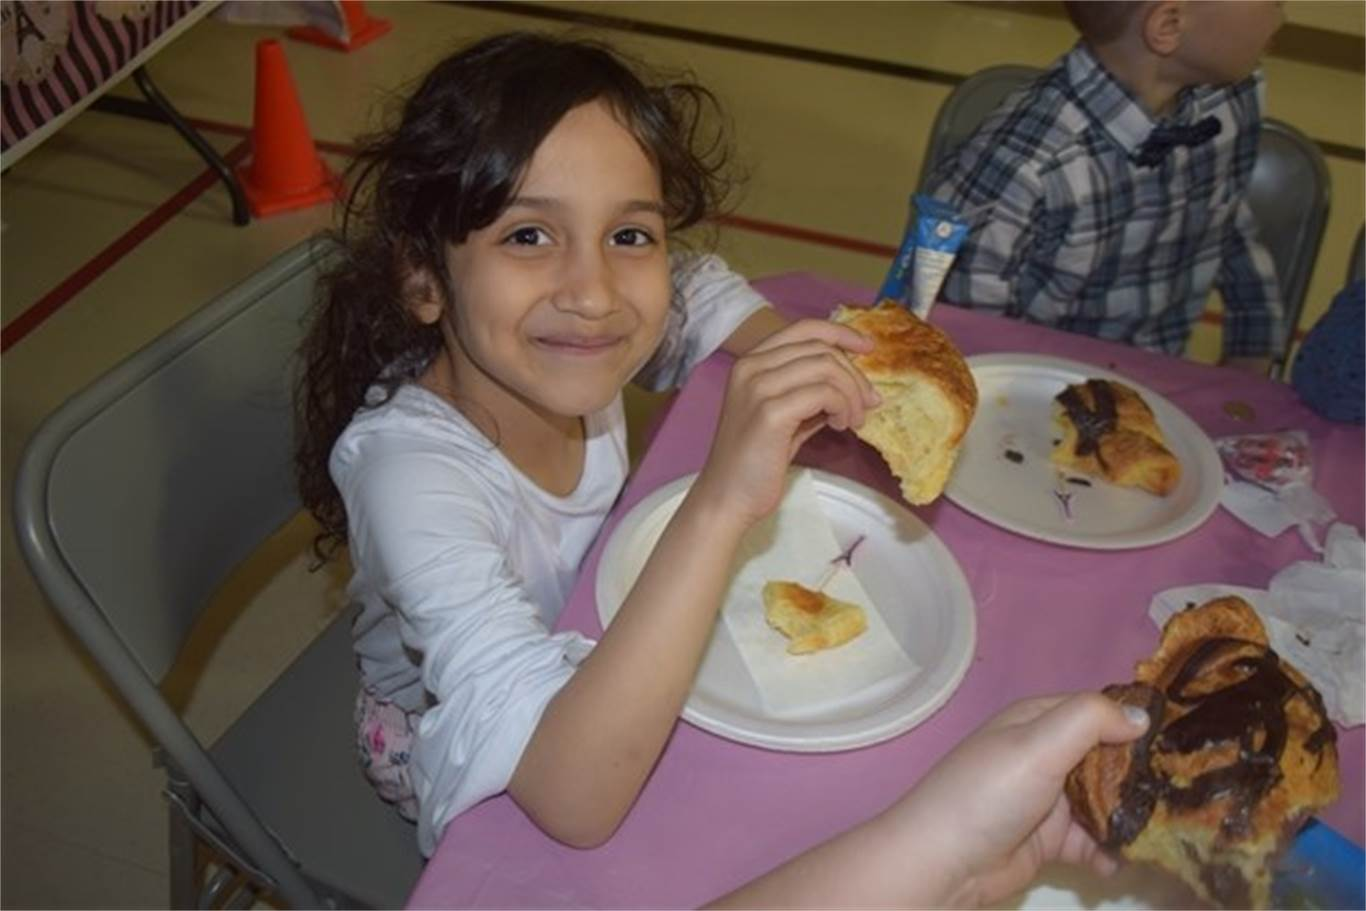 Grade 1 student Millvina Athnel enjoys a chocolate covered croissant during St. Luke Catholic Elementary School's A day in Paris event on May 8. Photo by Laura Lennie, Stoney Creek News